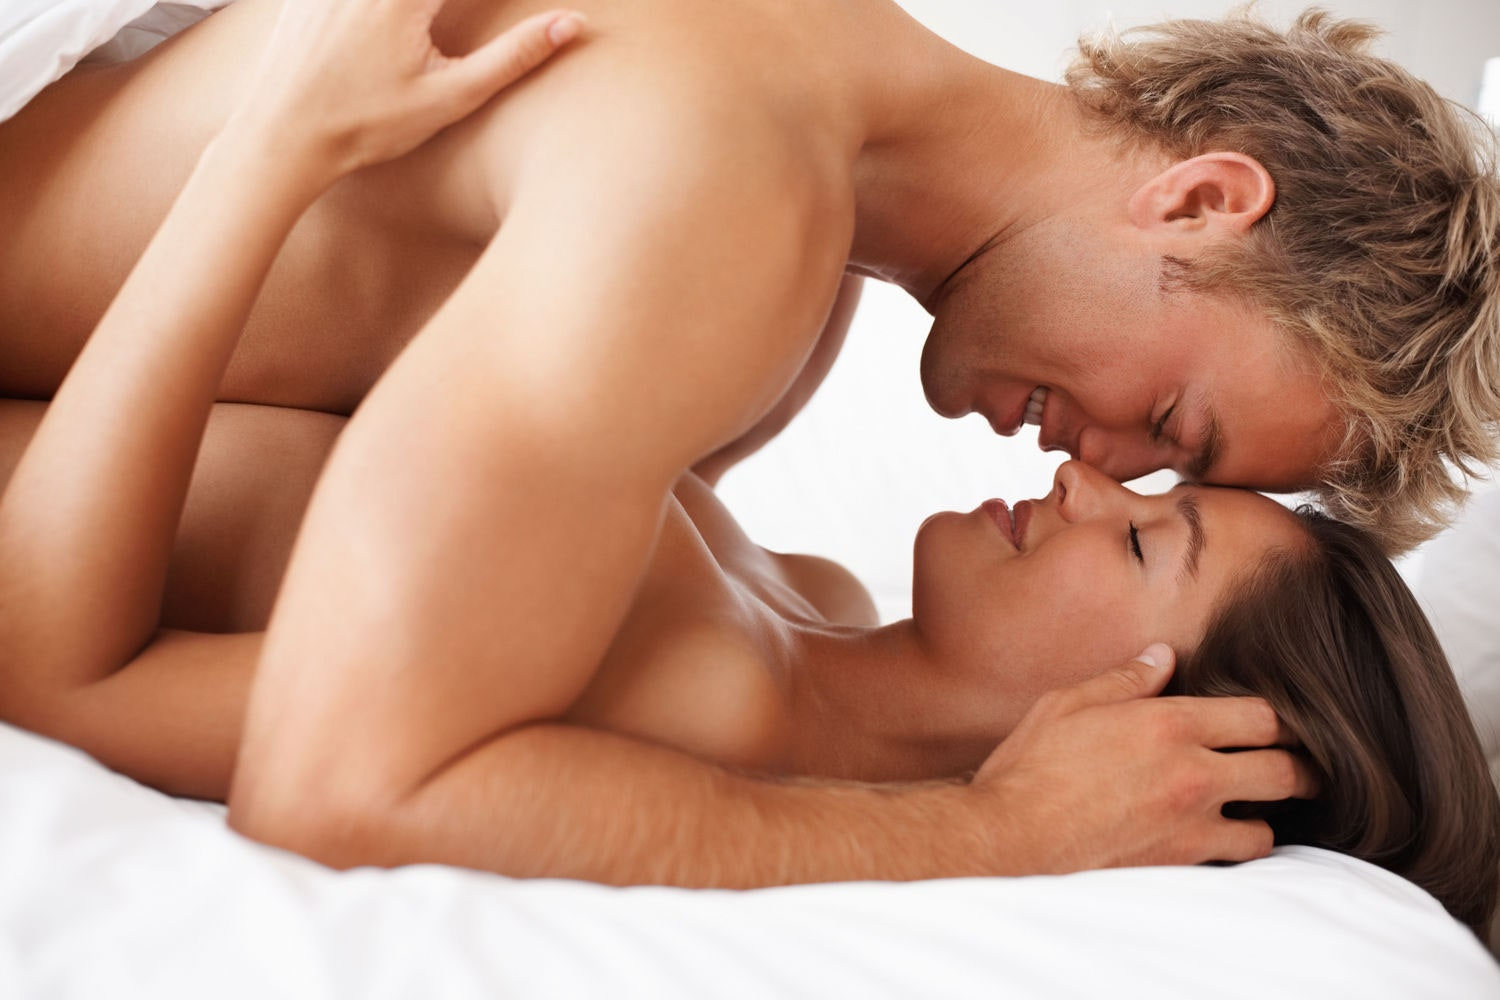 View missionary position sex